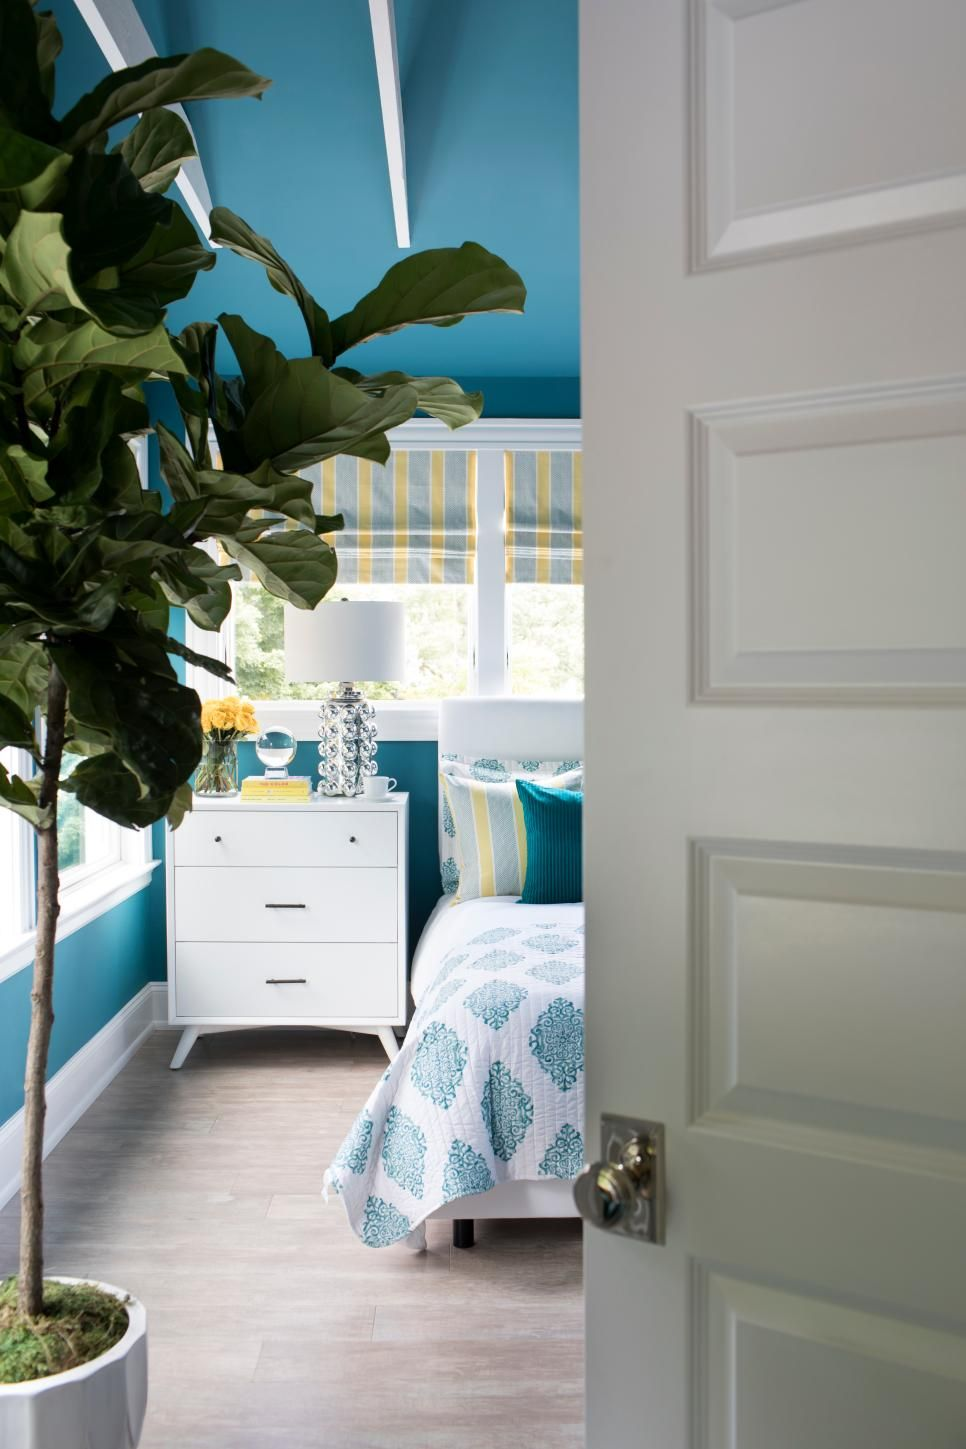 Best Master Bedroom Pictures From Hgtv Urban Oasis 2018 400 x 300